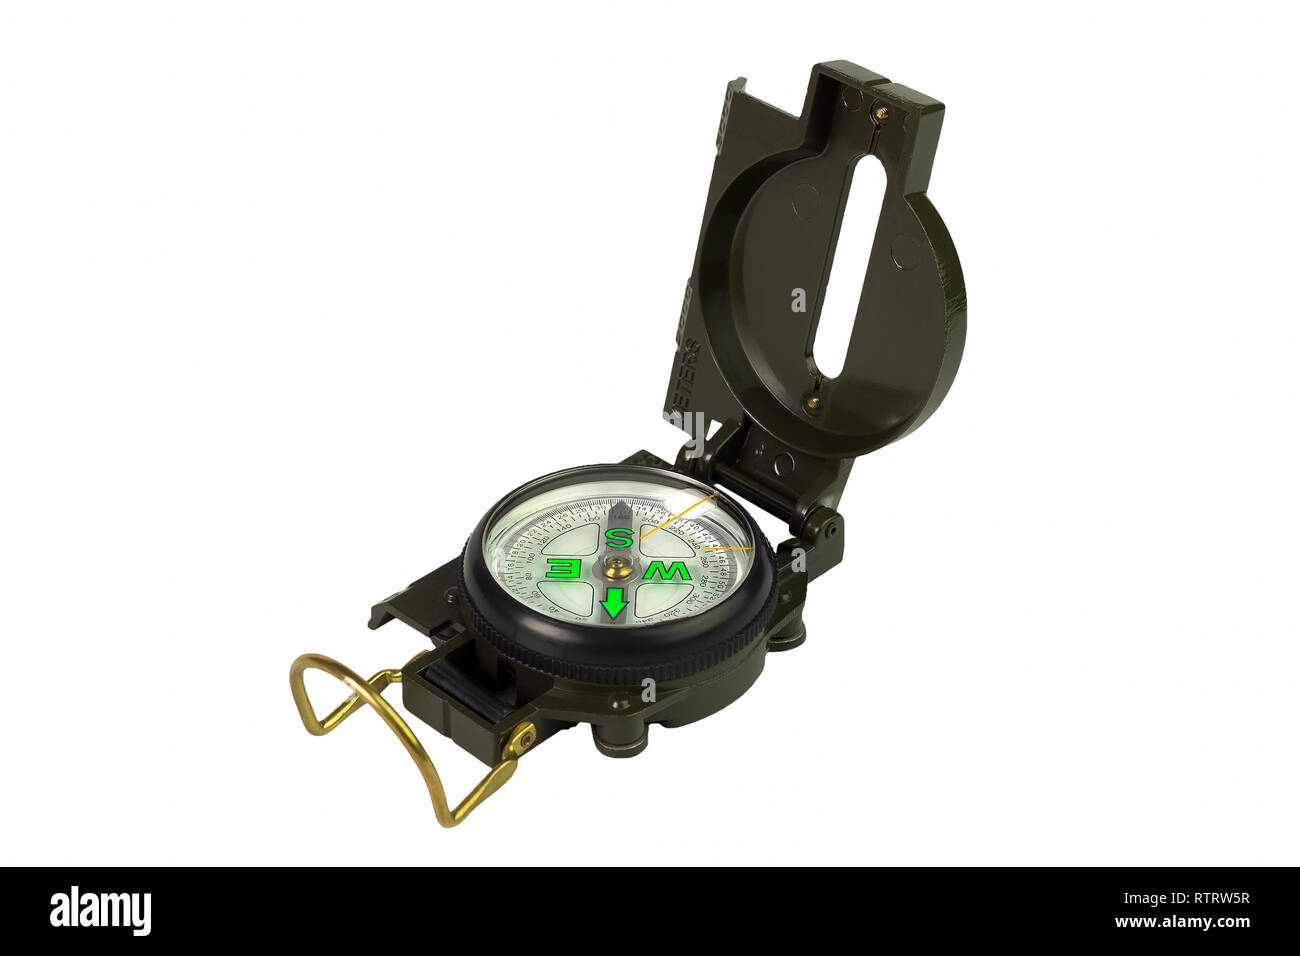 Compass with the lid open on a white background isolated - Stock Image